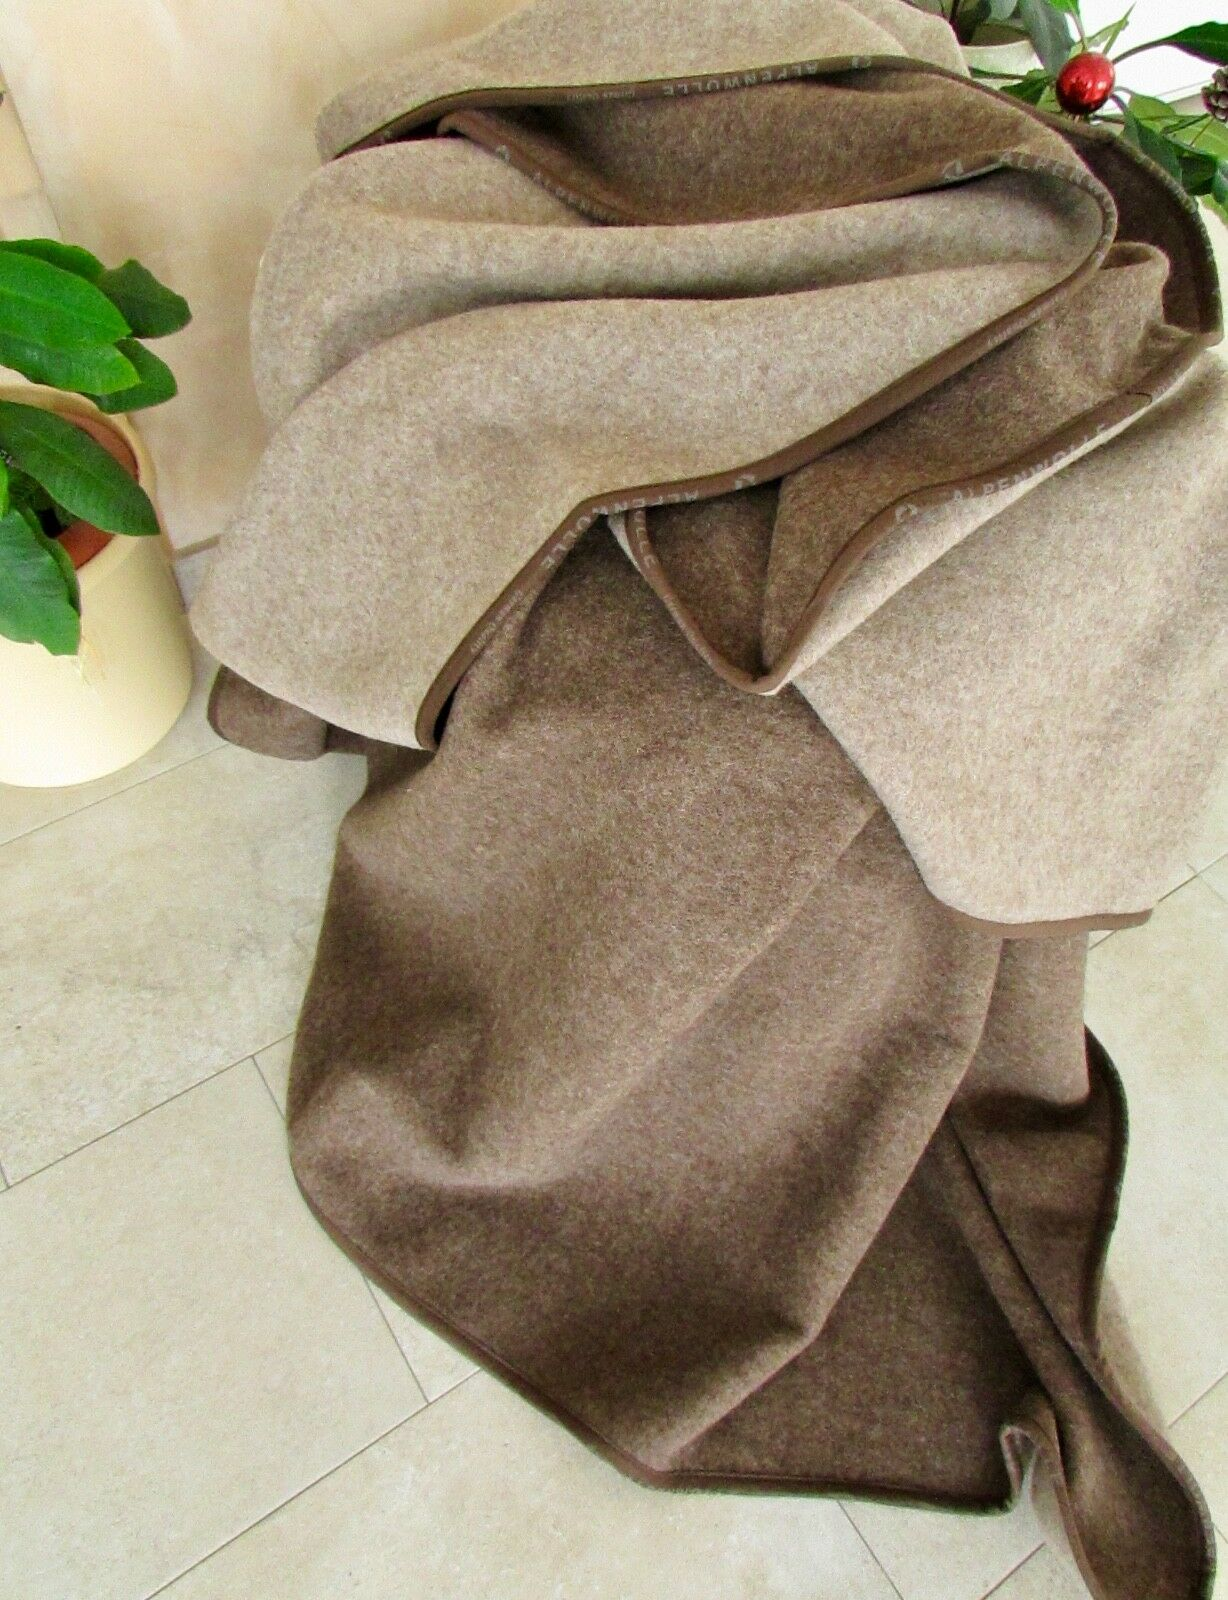 Wool Plaid Both Sides, Brown Mocha Bedspread, Throw, Made in Germany